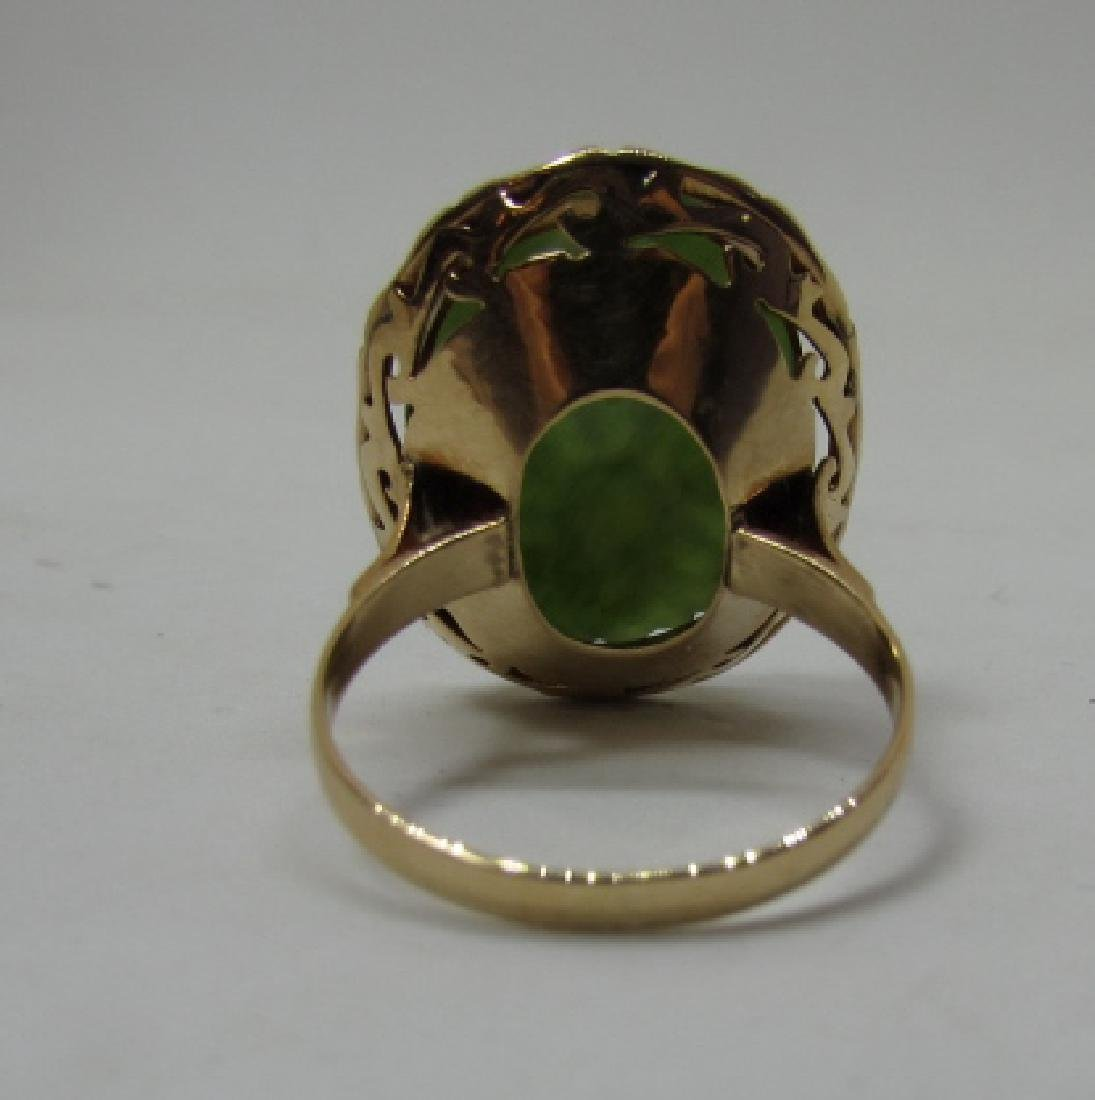 14K GOLD CARVED JADE RING 20 X 16 SIZE 7 - 2